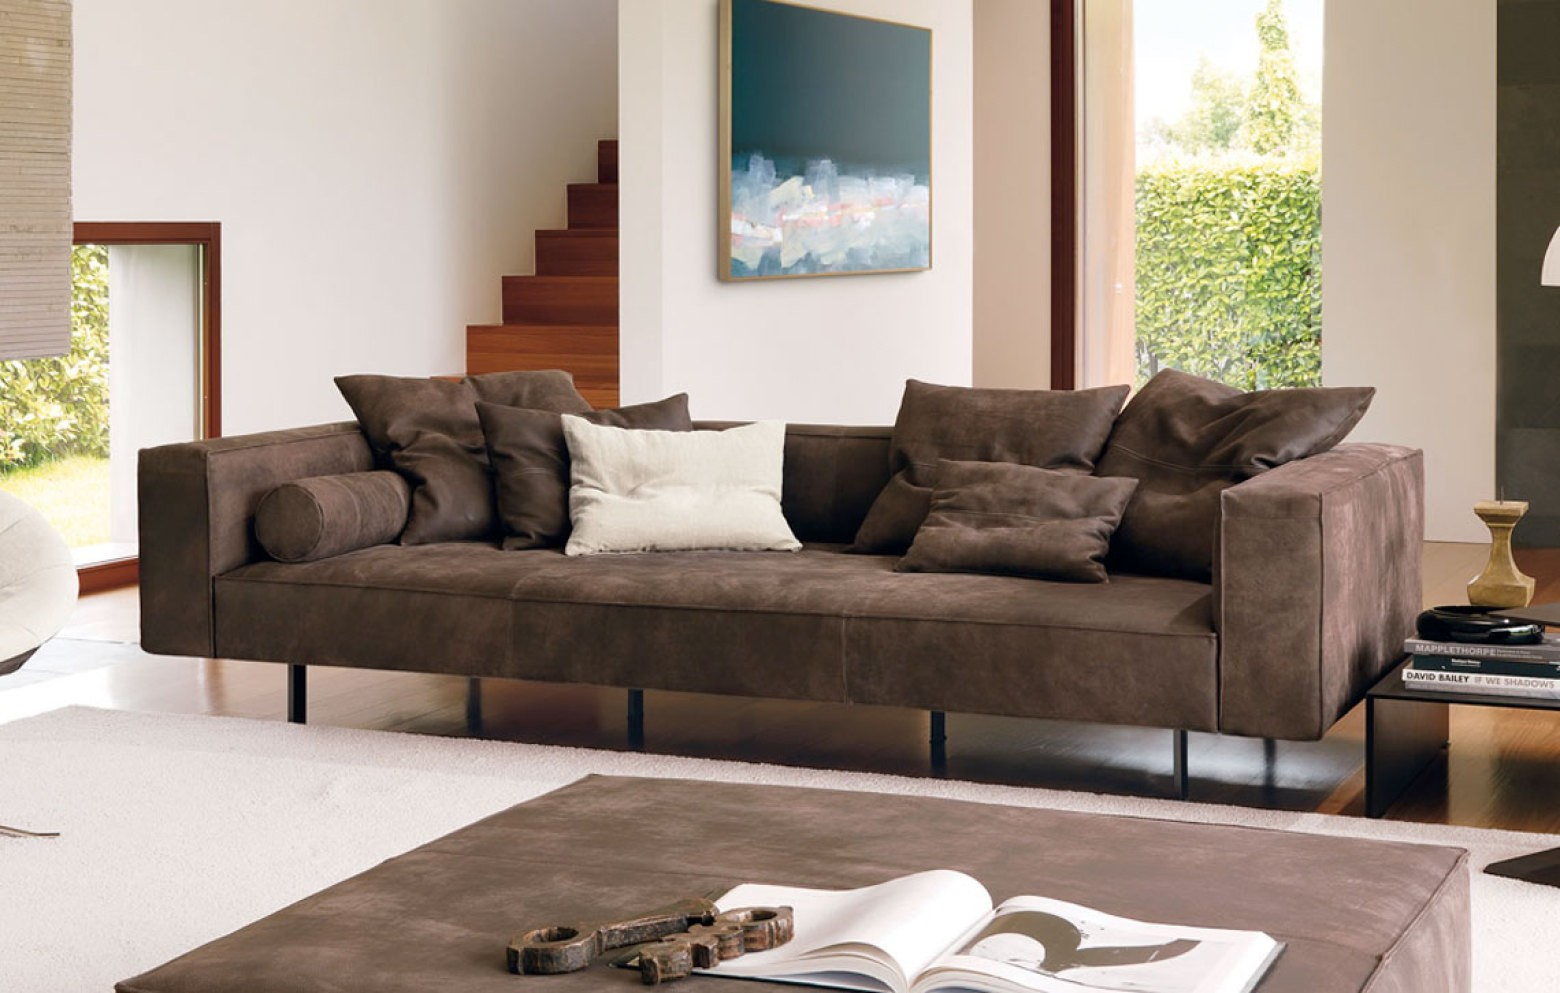 zerocento sofas online outlet who 39 s perfect. Black Bedroom Furniture Sets. Home Design Ideas